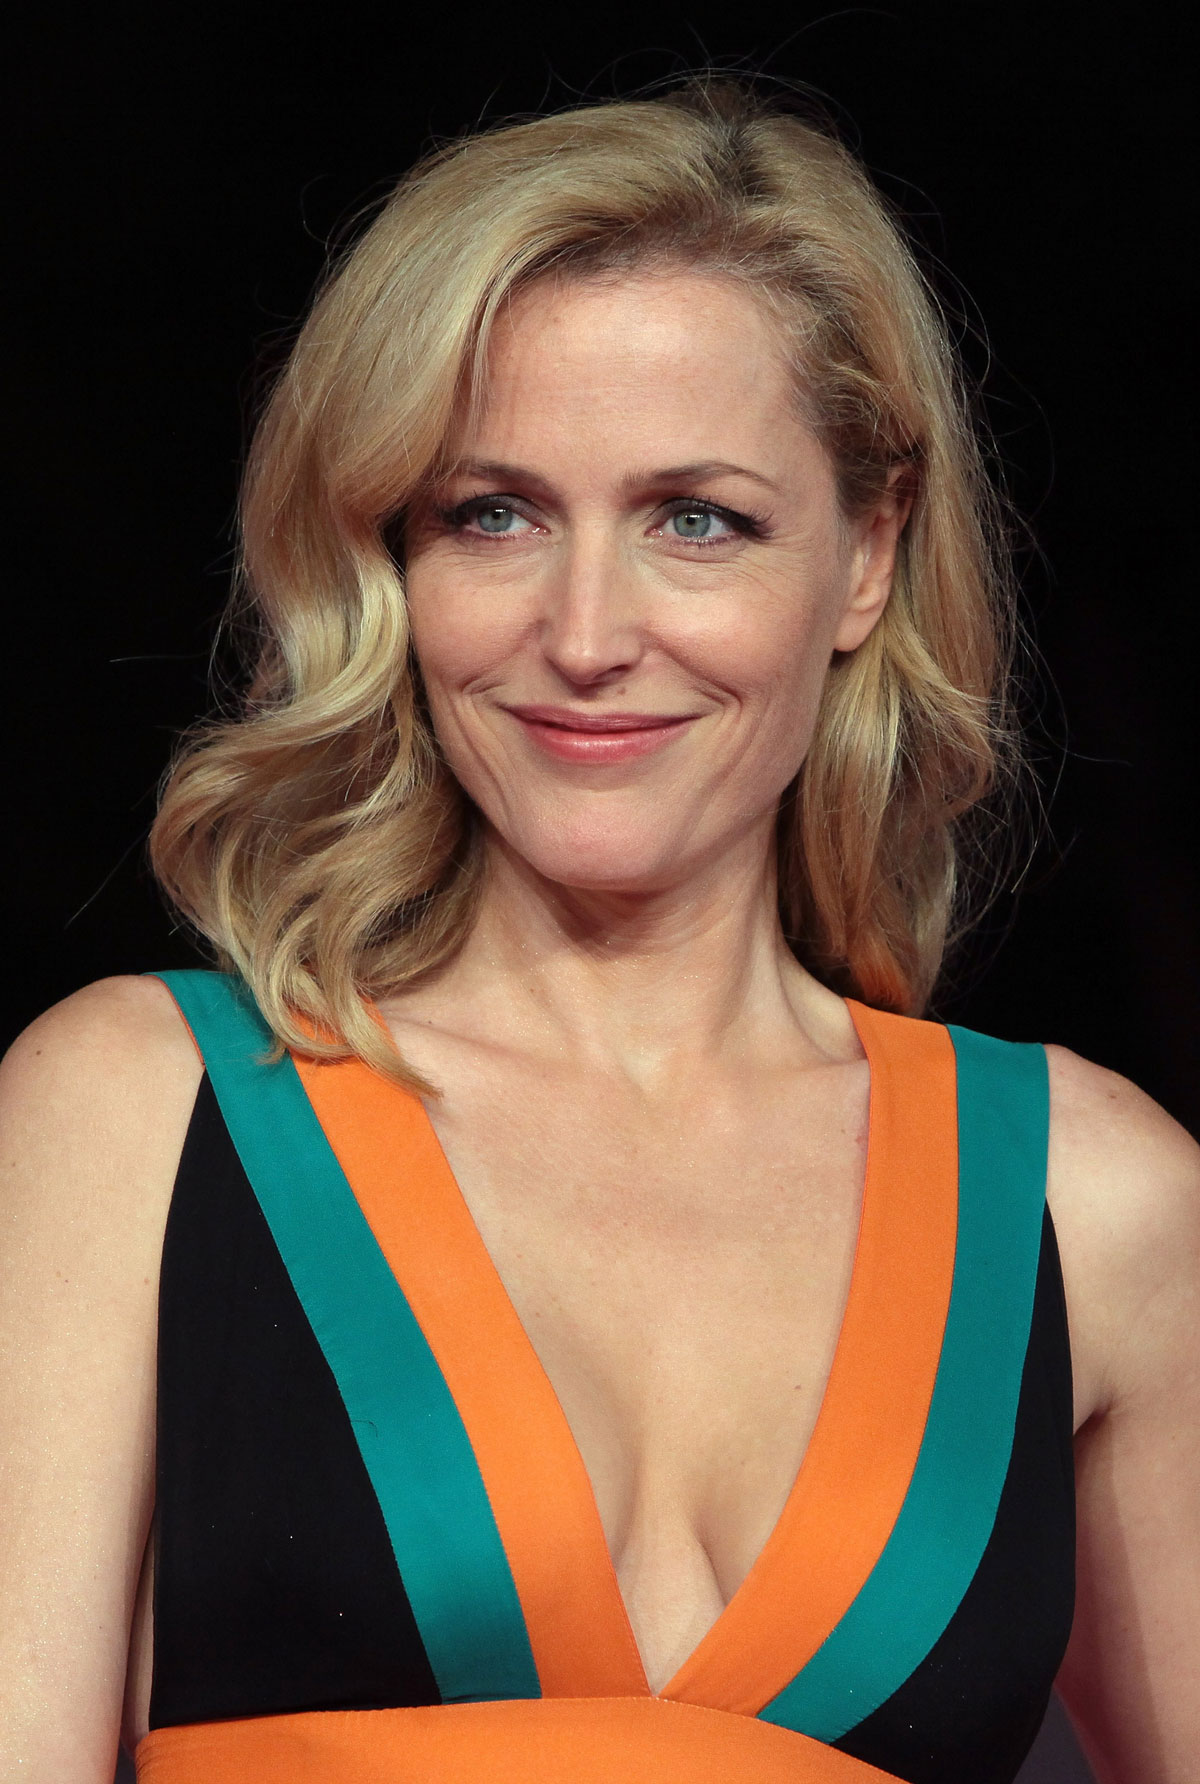 Celebrity Gillian Anderson nudes (74 photo), Tits, Leaked, Instagram, see through 2019